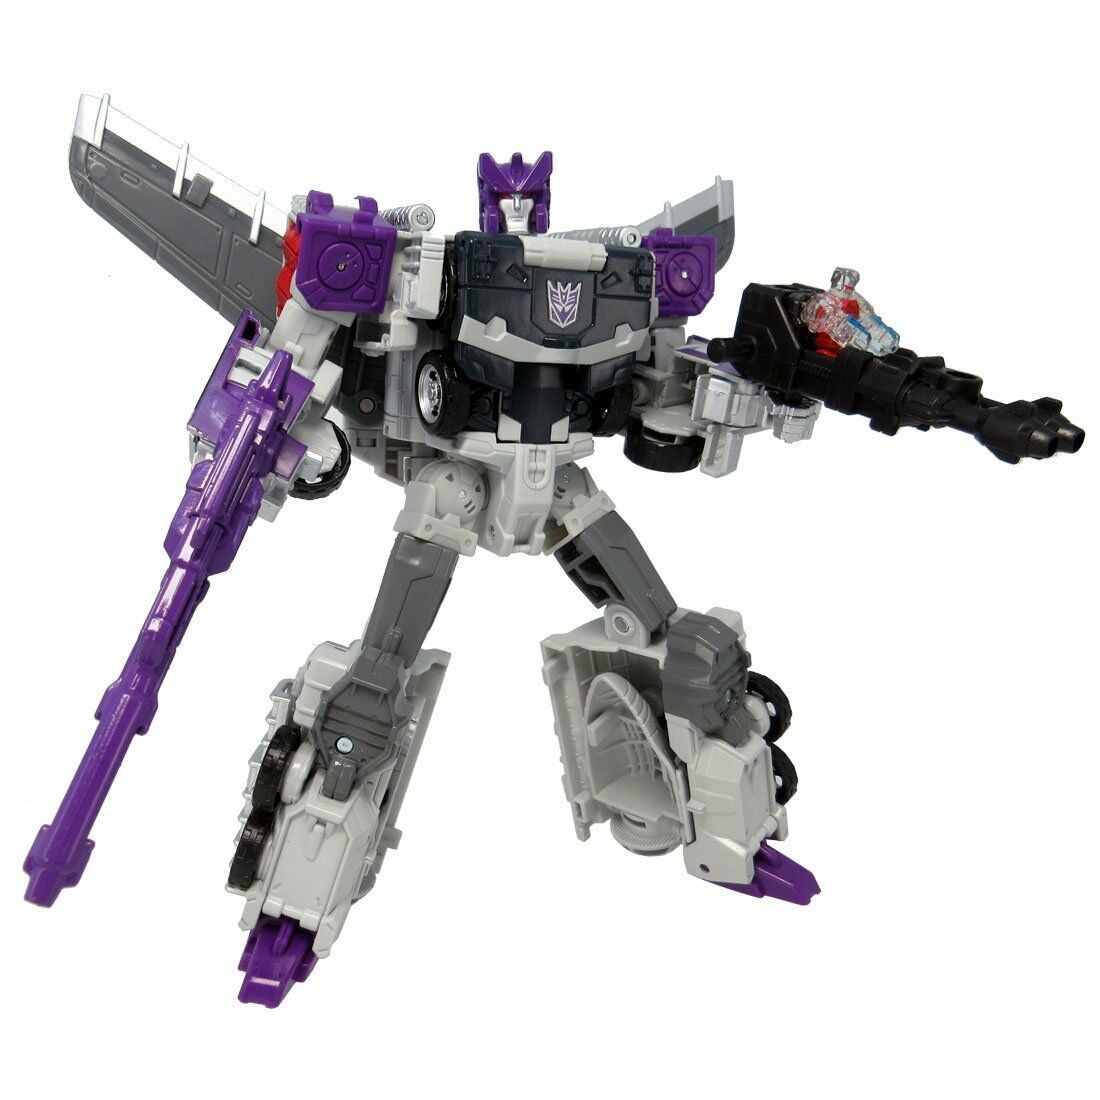 Takara Tomy Transformers LG57 Octone Action Figure